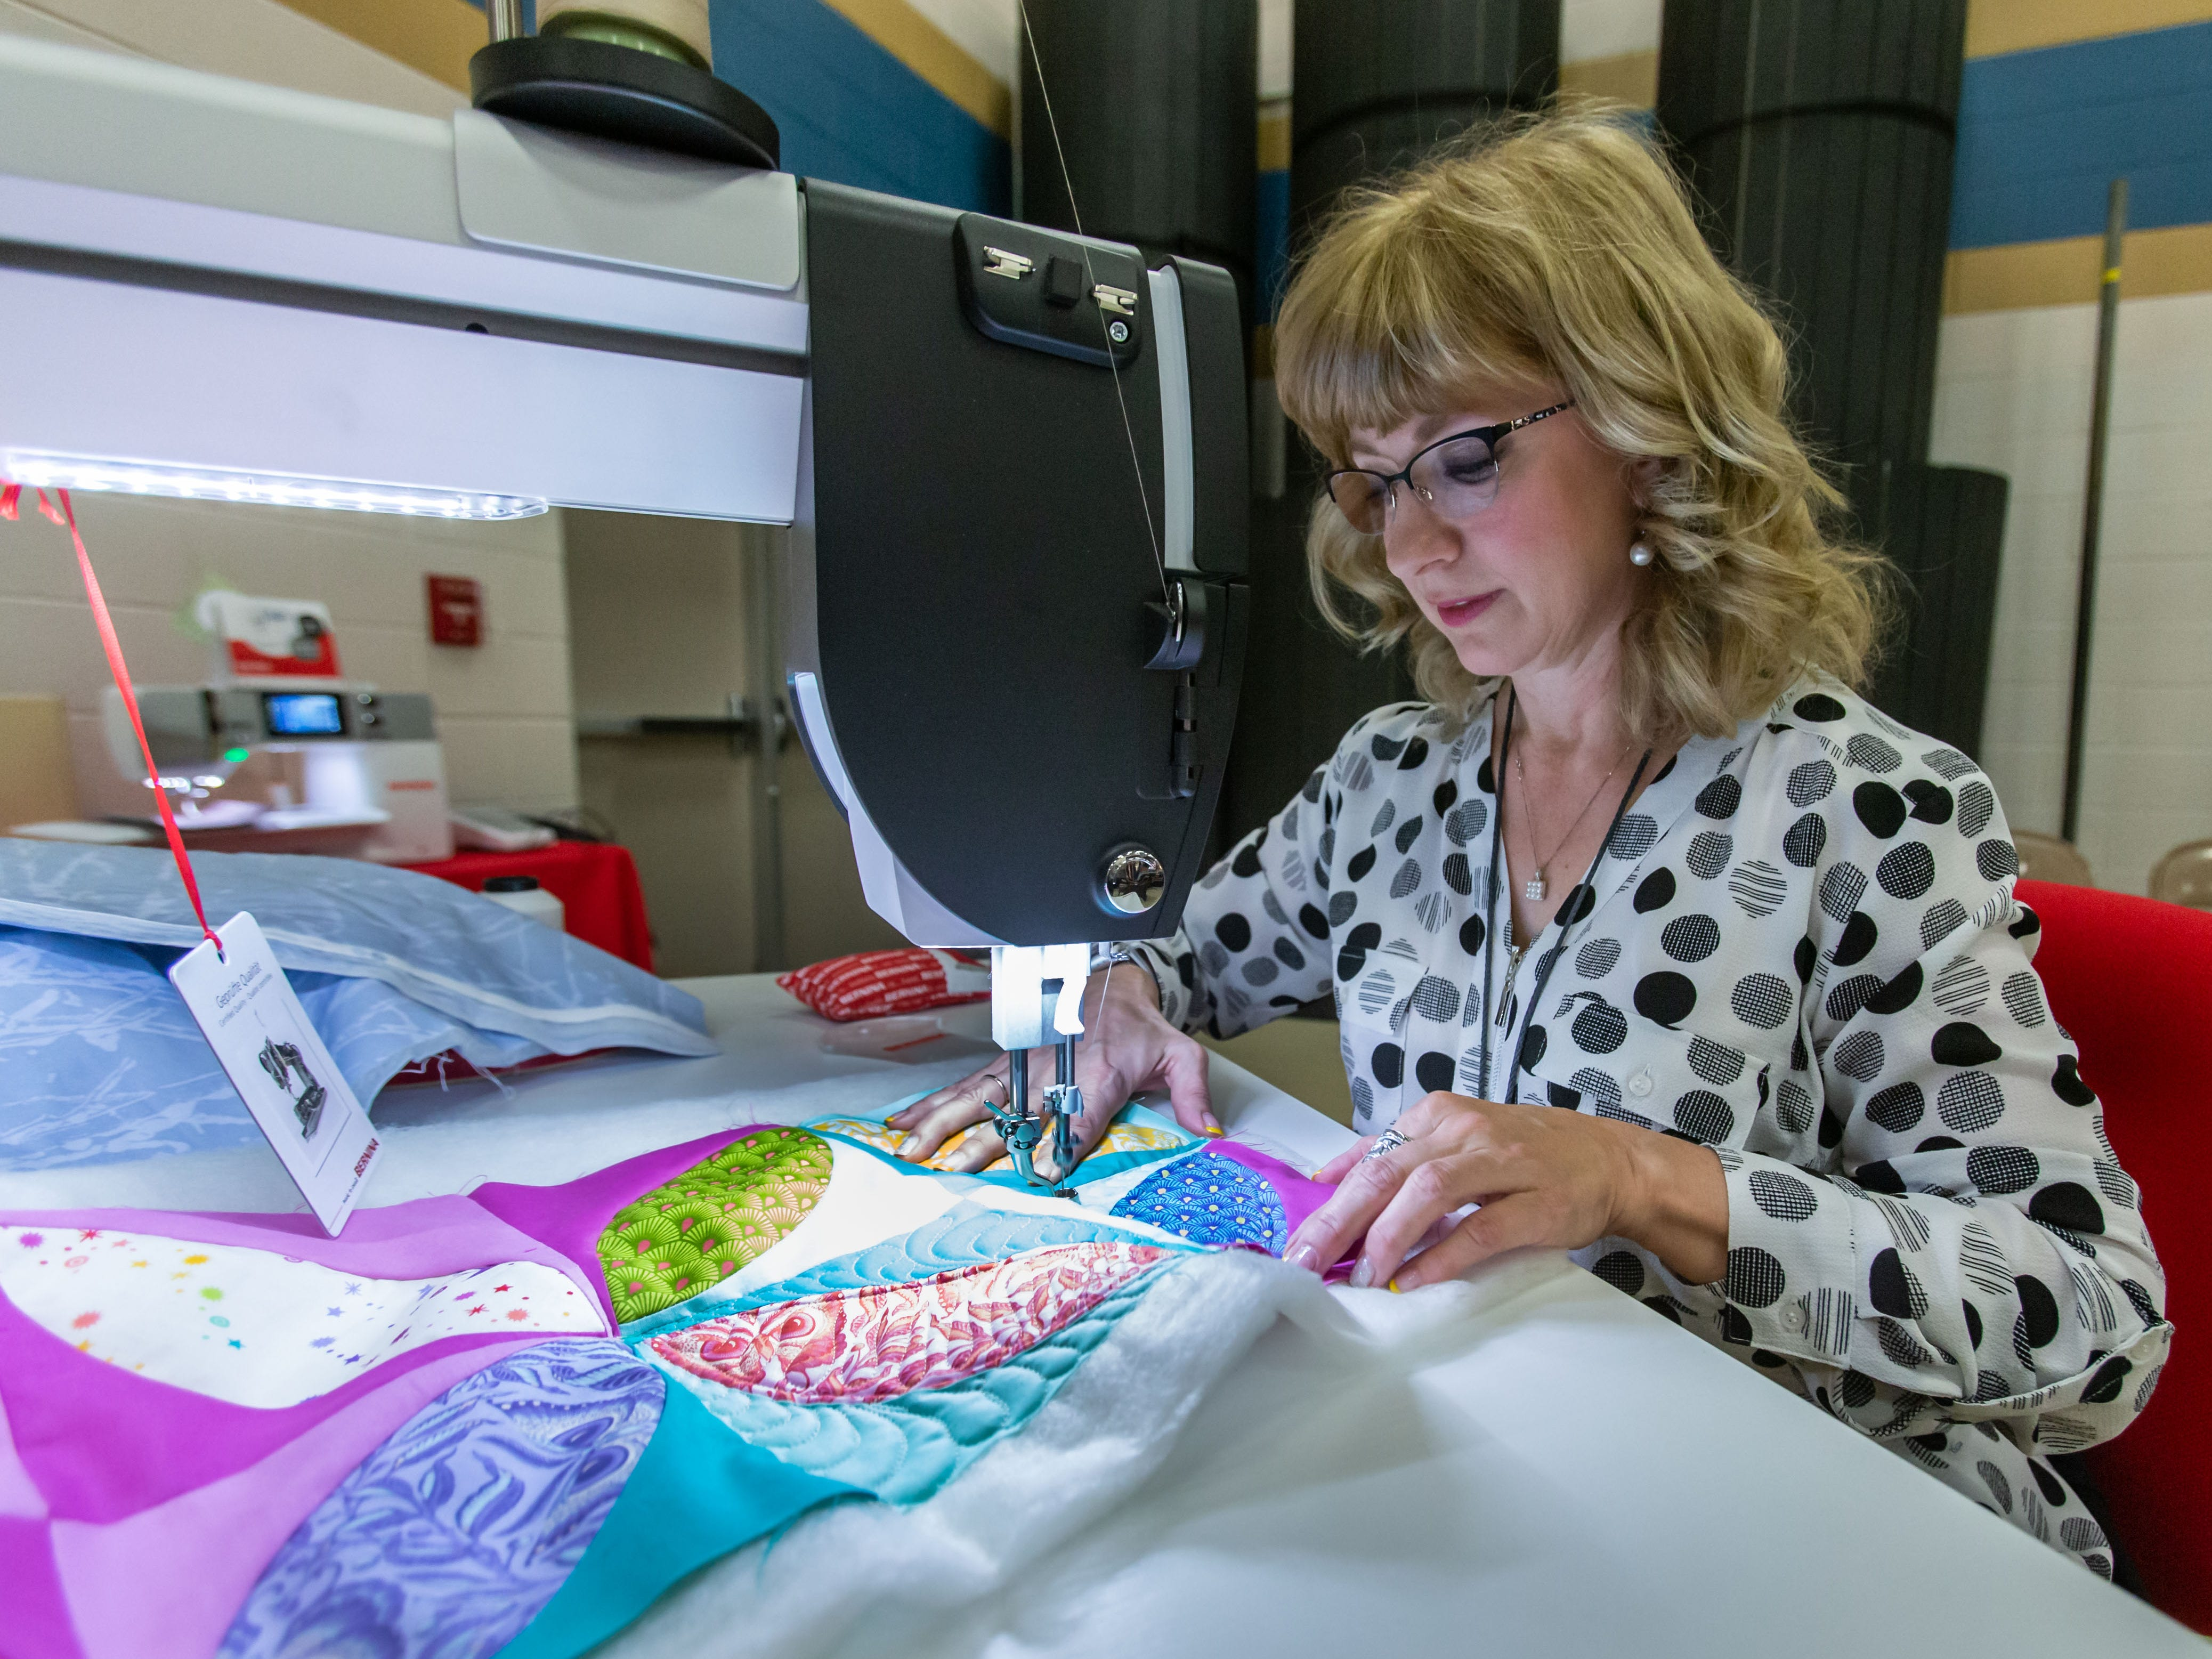 Employee Donna Bularz of Bigsby's Sewing Center in Elm Grove demonstrates free motion quilting during the Mukwonago Crazy Quilters 32nd annual Quilt Show at Park View Middle School on Saturday, March 30, 2019. The popular two-day event features show quilts, demonstrations, vendors, raffles, appraisals and more.